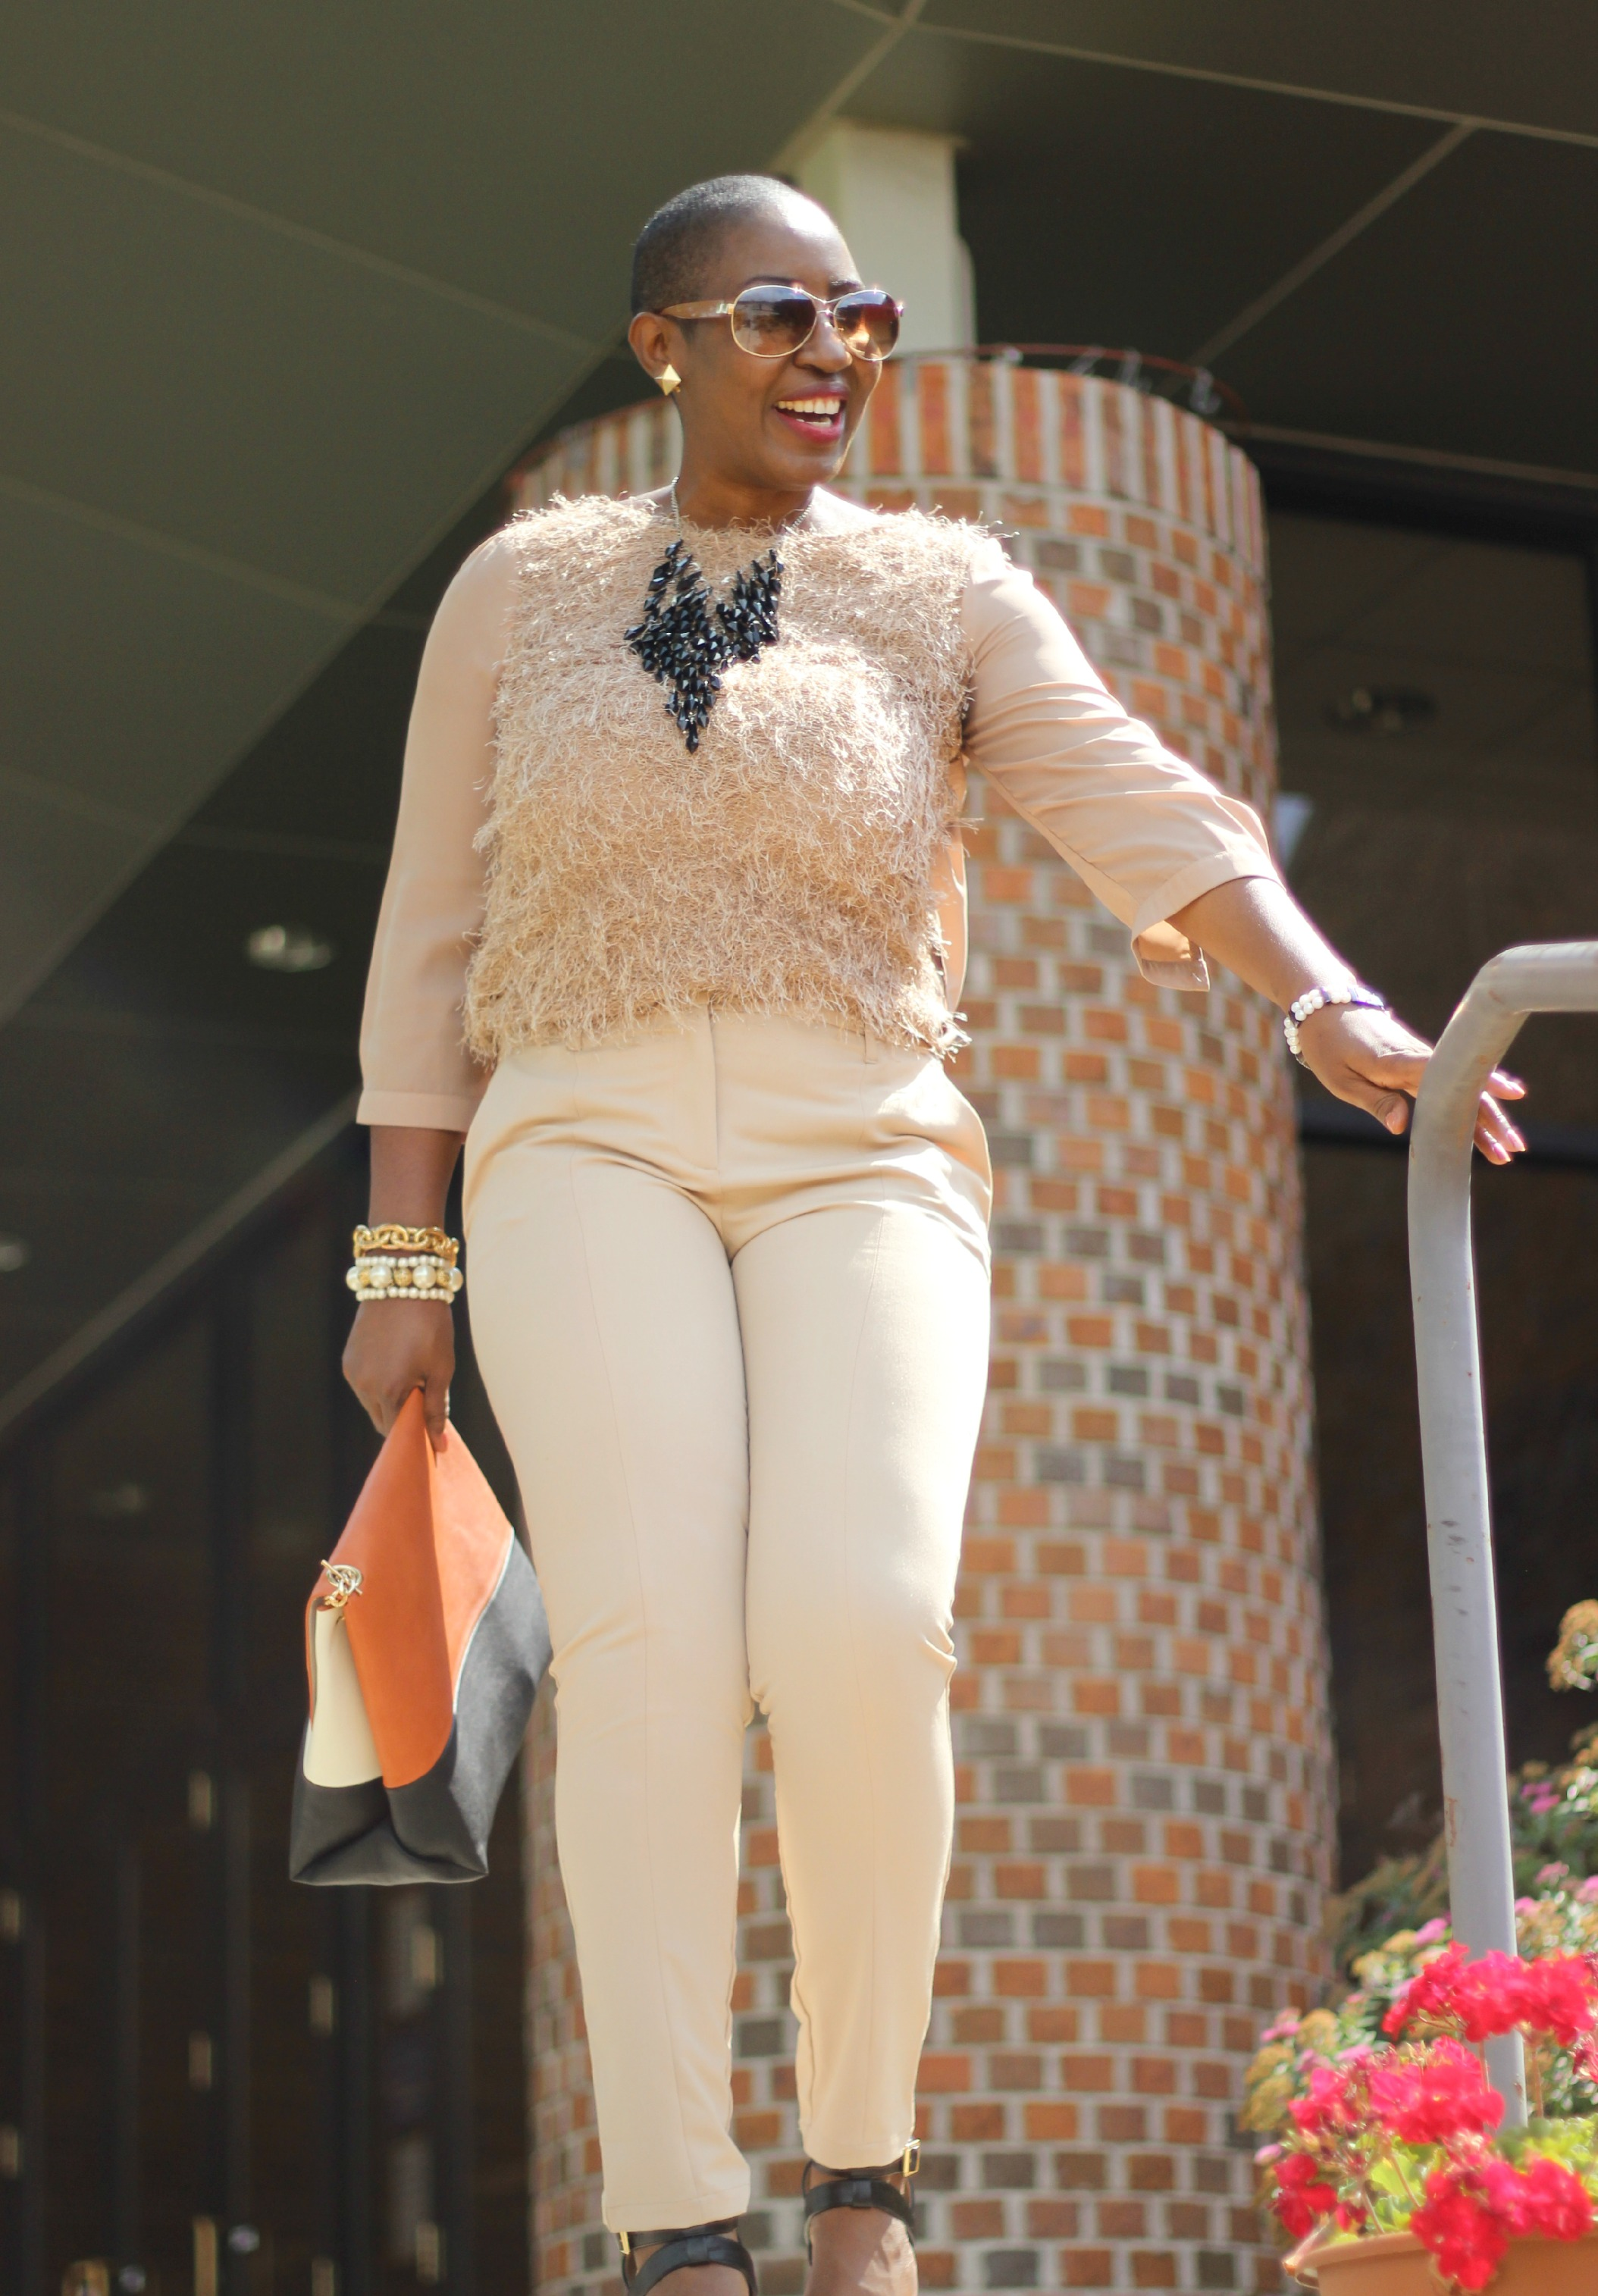 Neutral outfit- 15